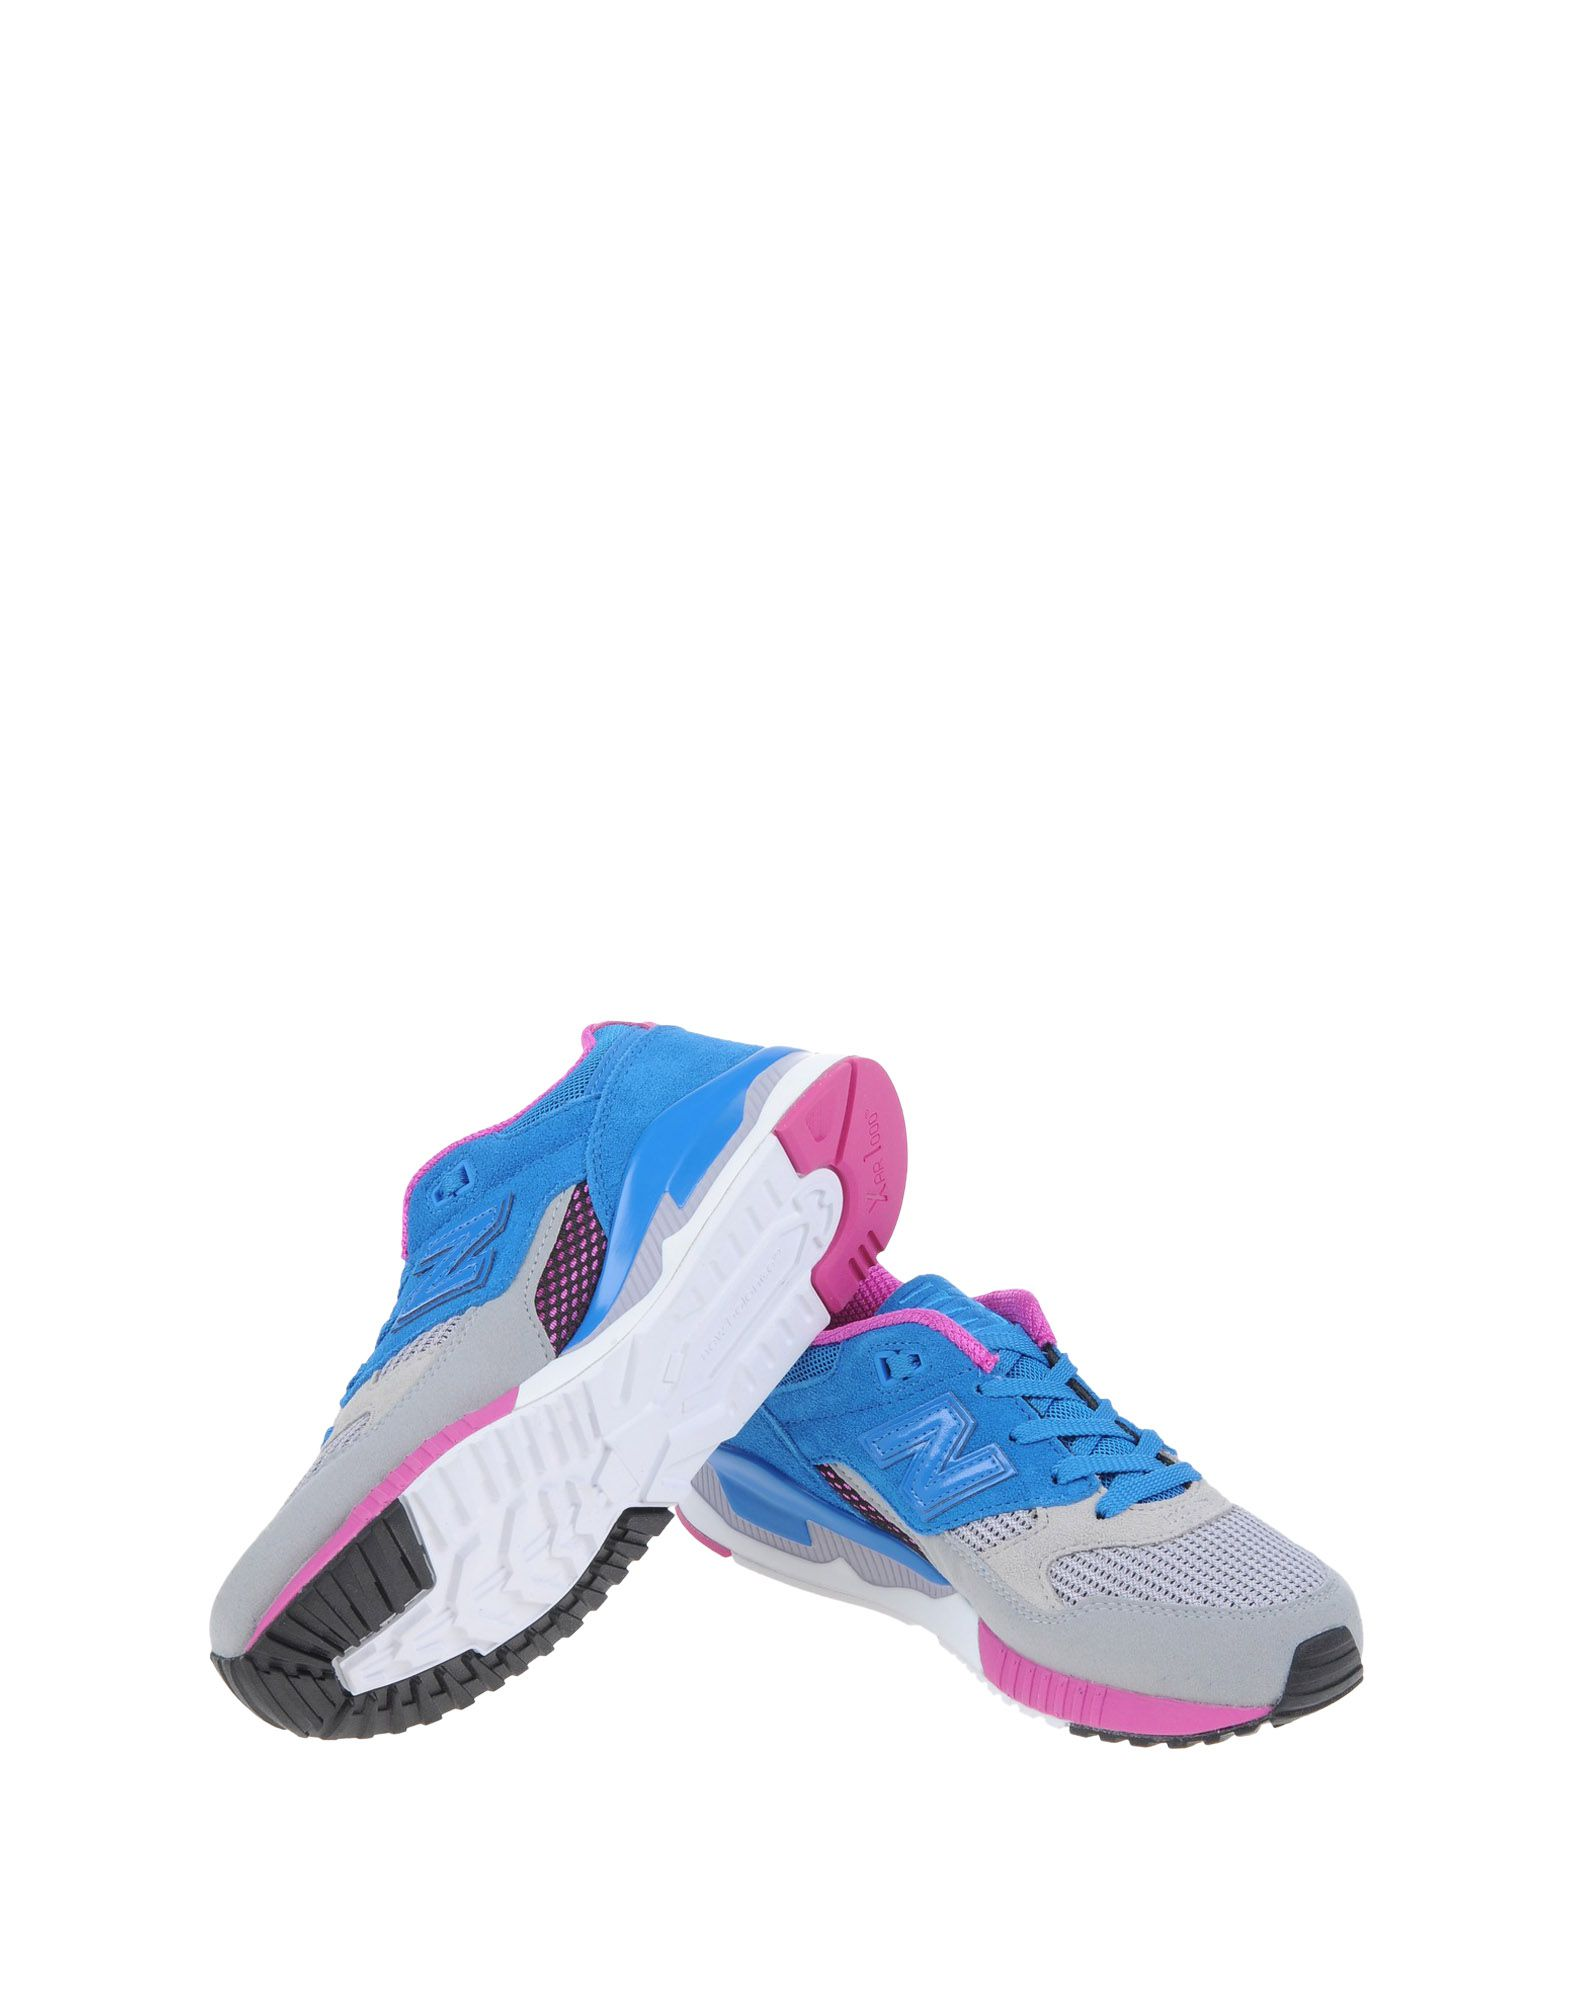 New Balance 530 Robotech - Sneakers - Women New Balance United Sneakers online on  United Balance Kingdom - 44989958QR 7e385c